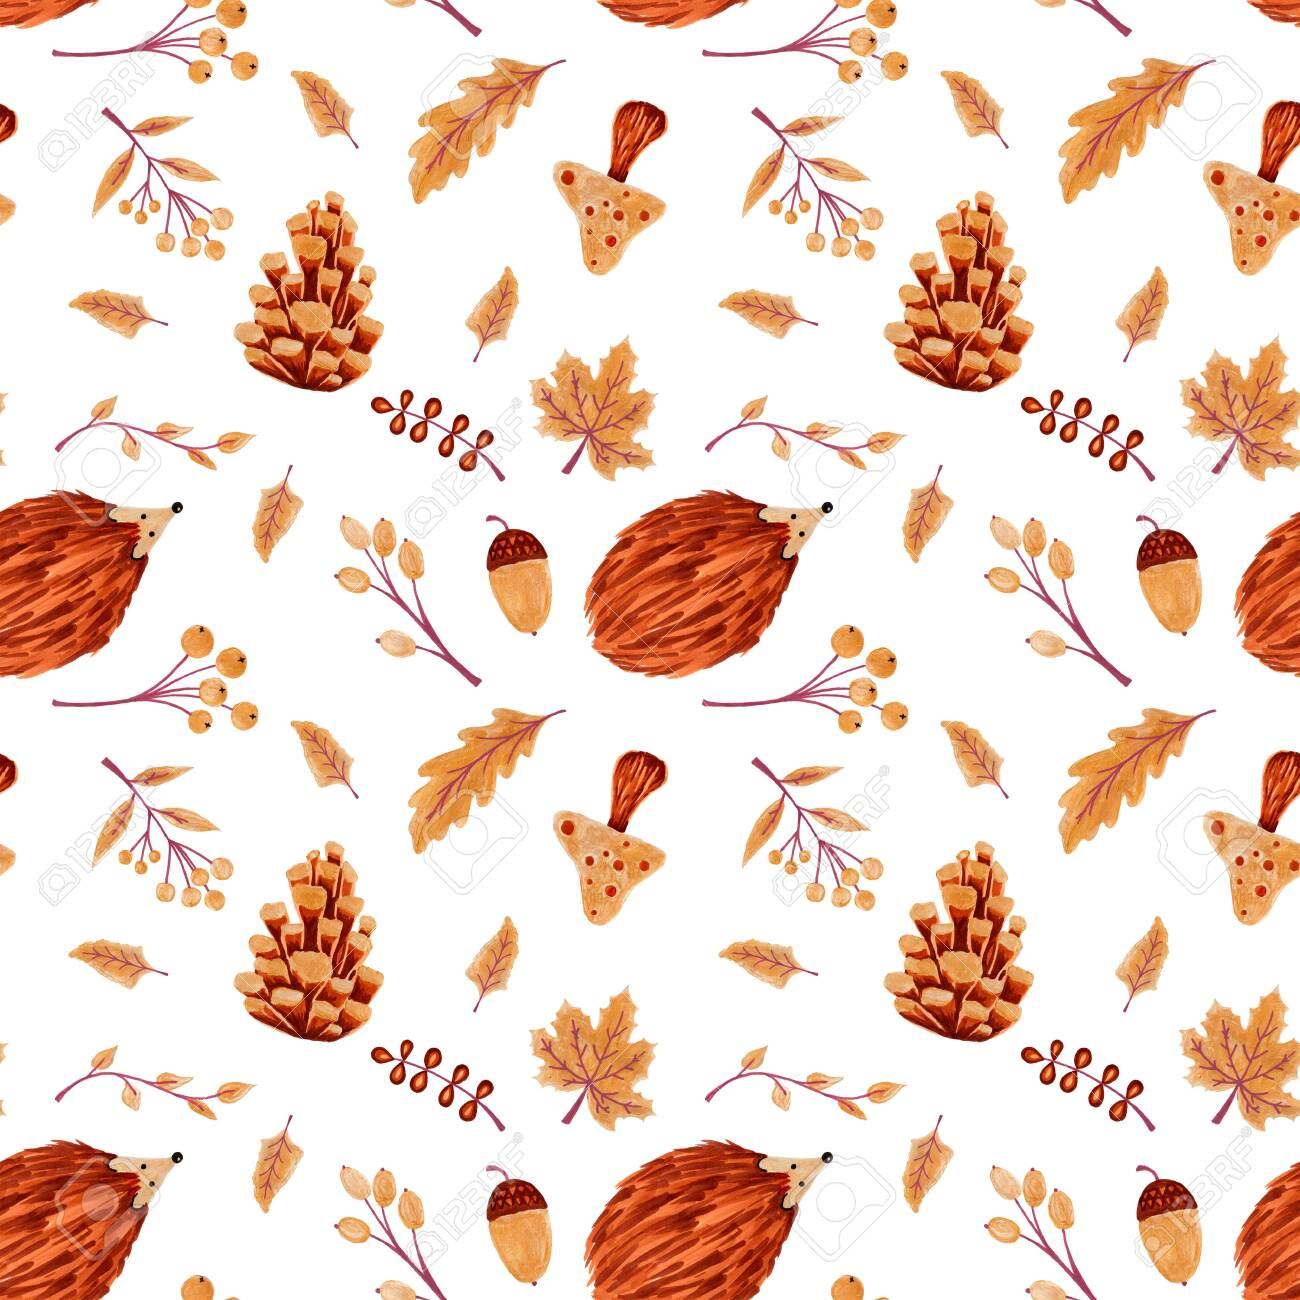 Seamless Autumn Pattern with Leaves and Hedgehog - 127956745